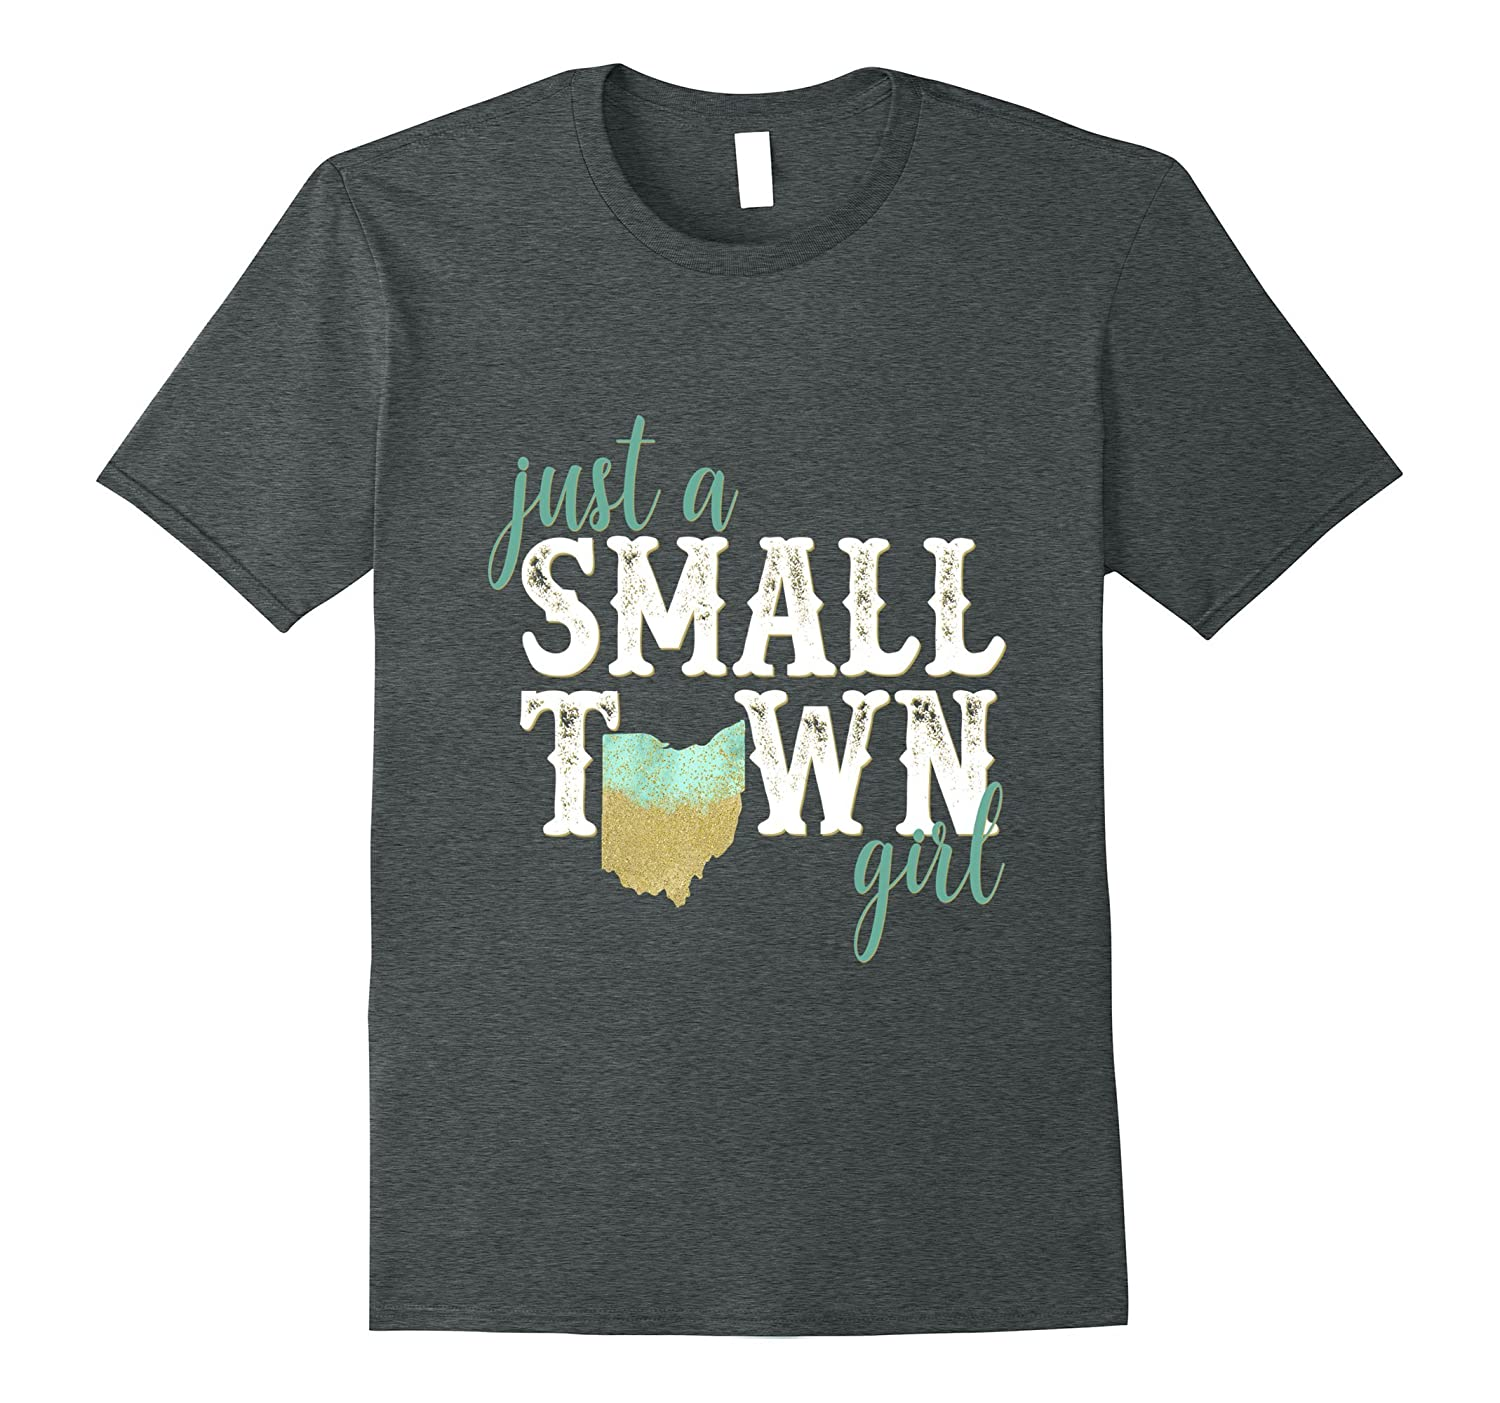 Ohio Small Town Girl Shirt Hometown State Roots Home-FL